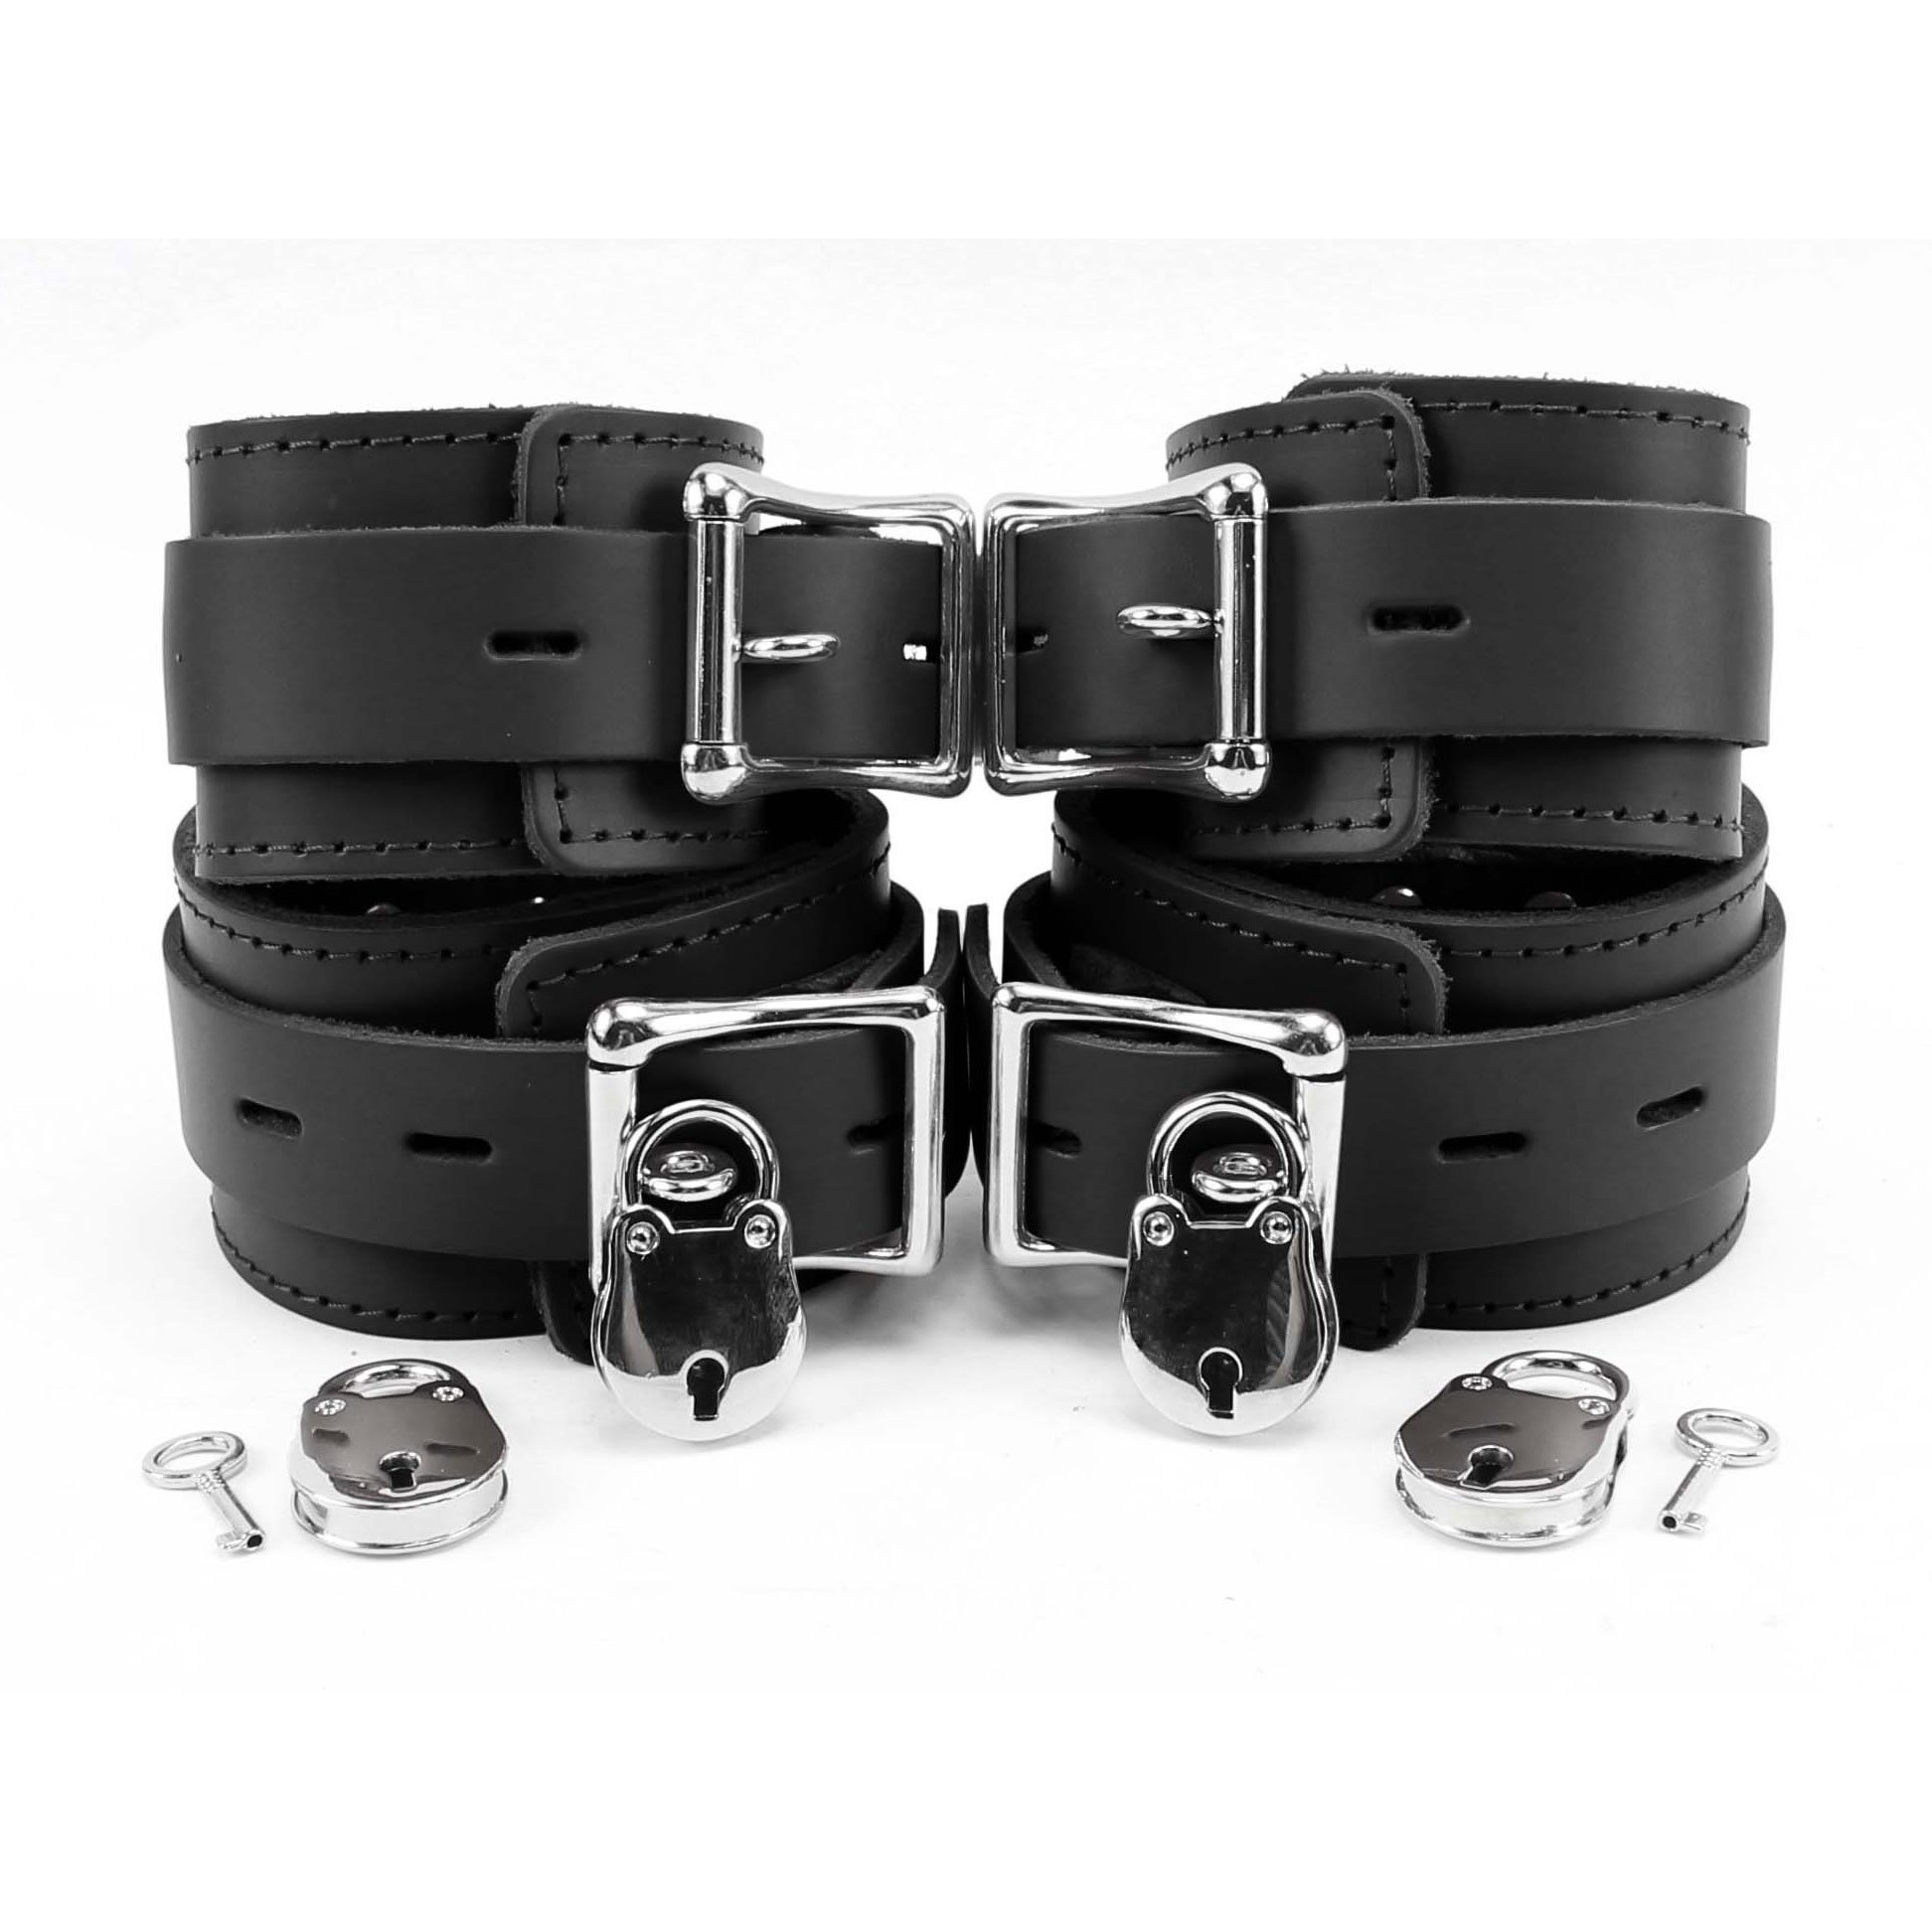 Atlanta Wrist and Ankle Cuffs Combo Ultra Soft Lambskin Leather (Black) by VP Leather